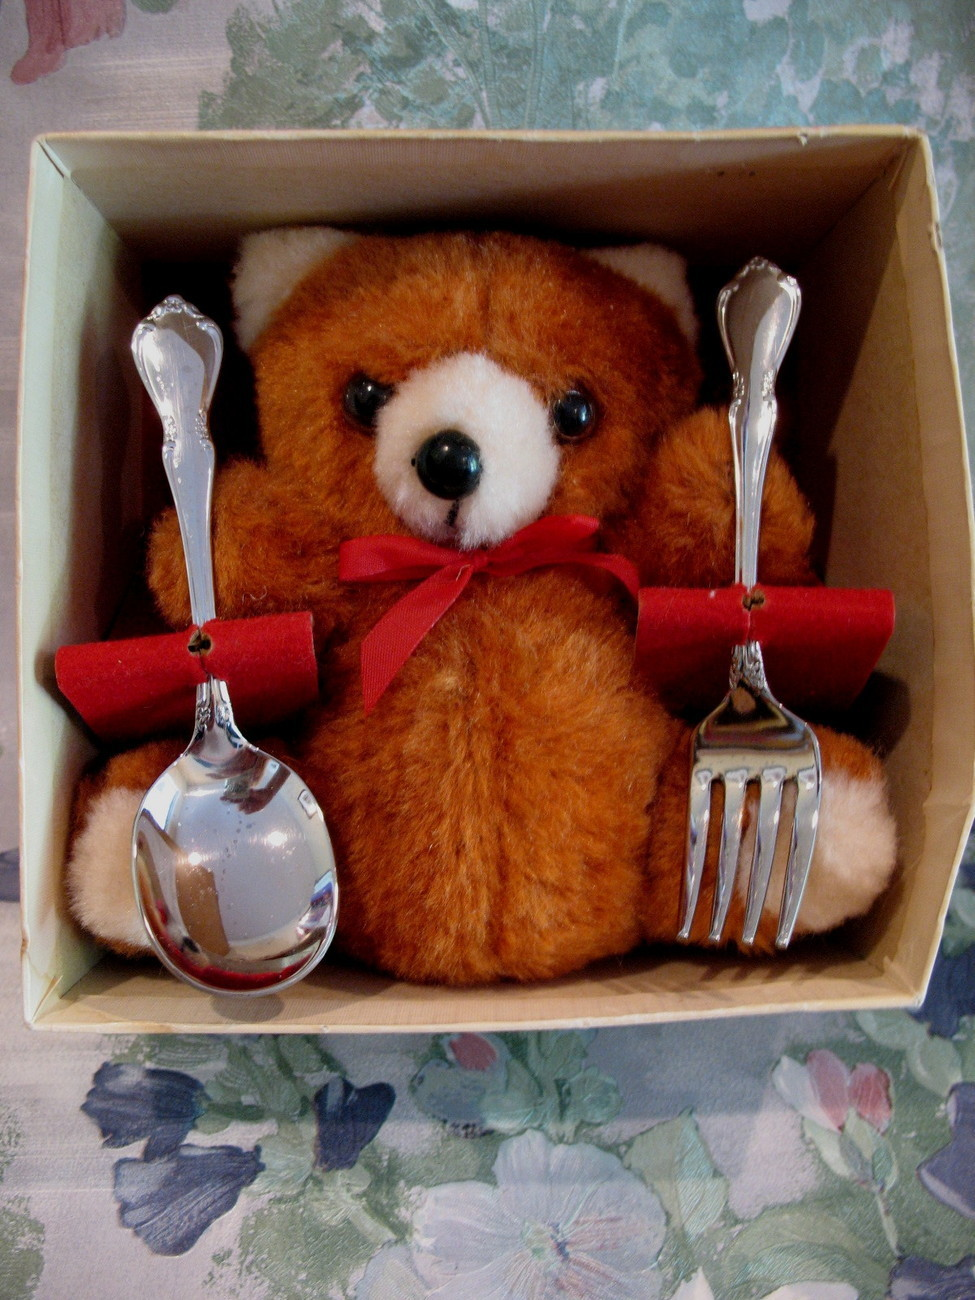 Teddy Bear Baby Baby's First Feeding Souvenir Spoon Fork